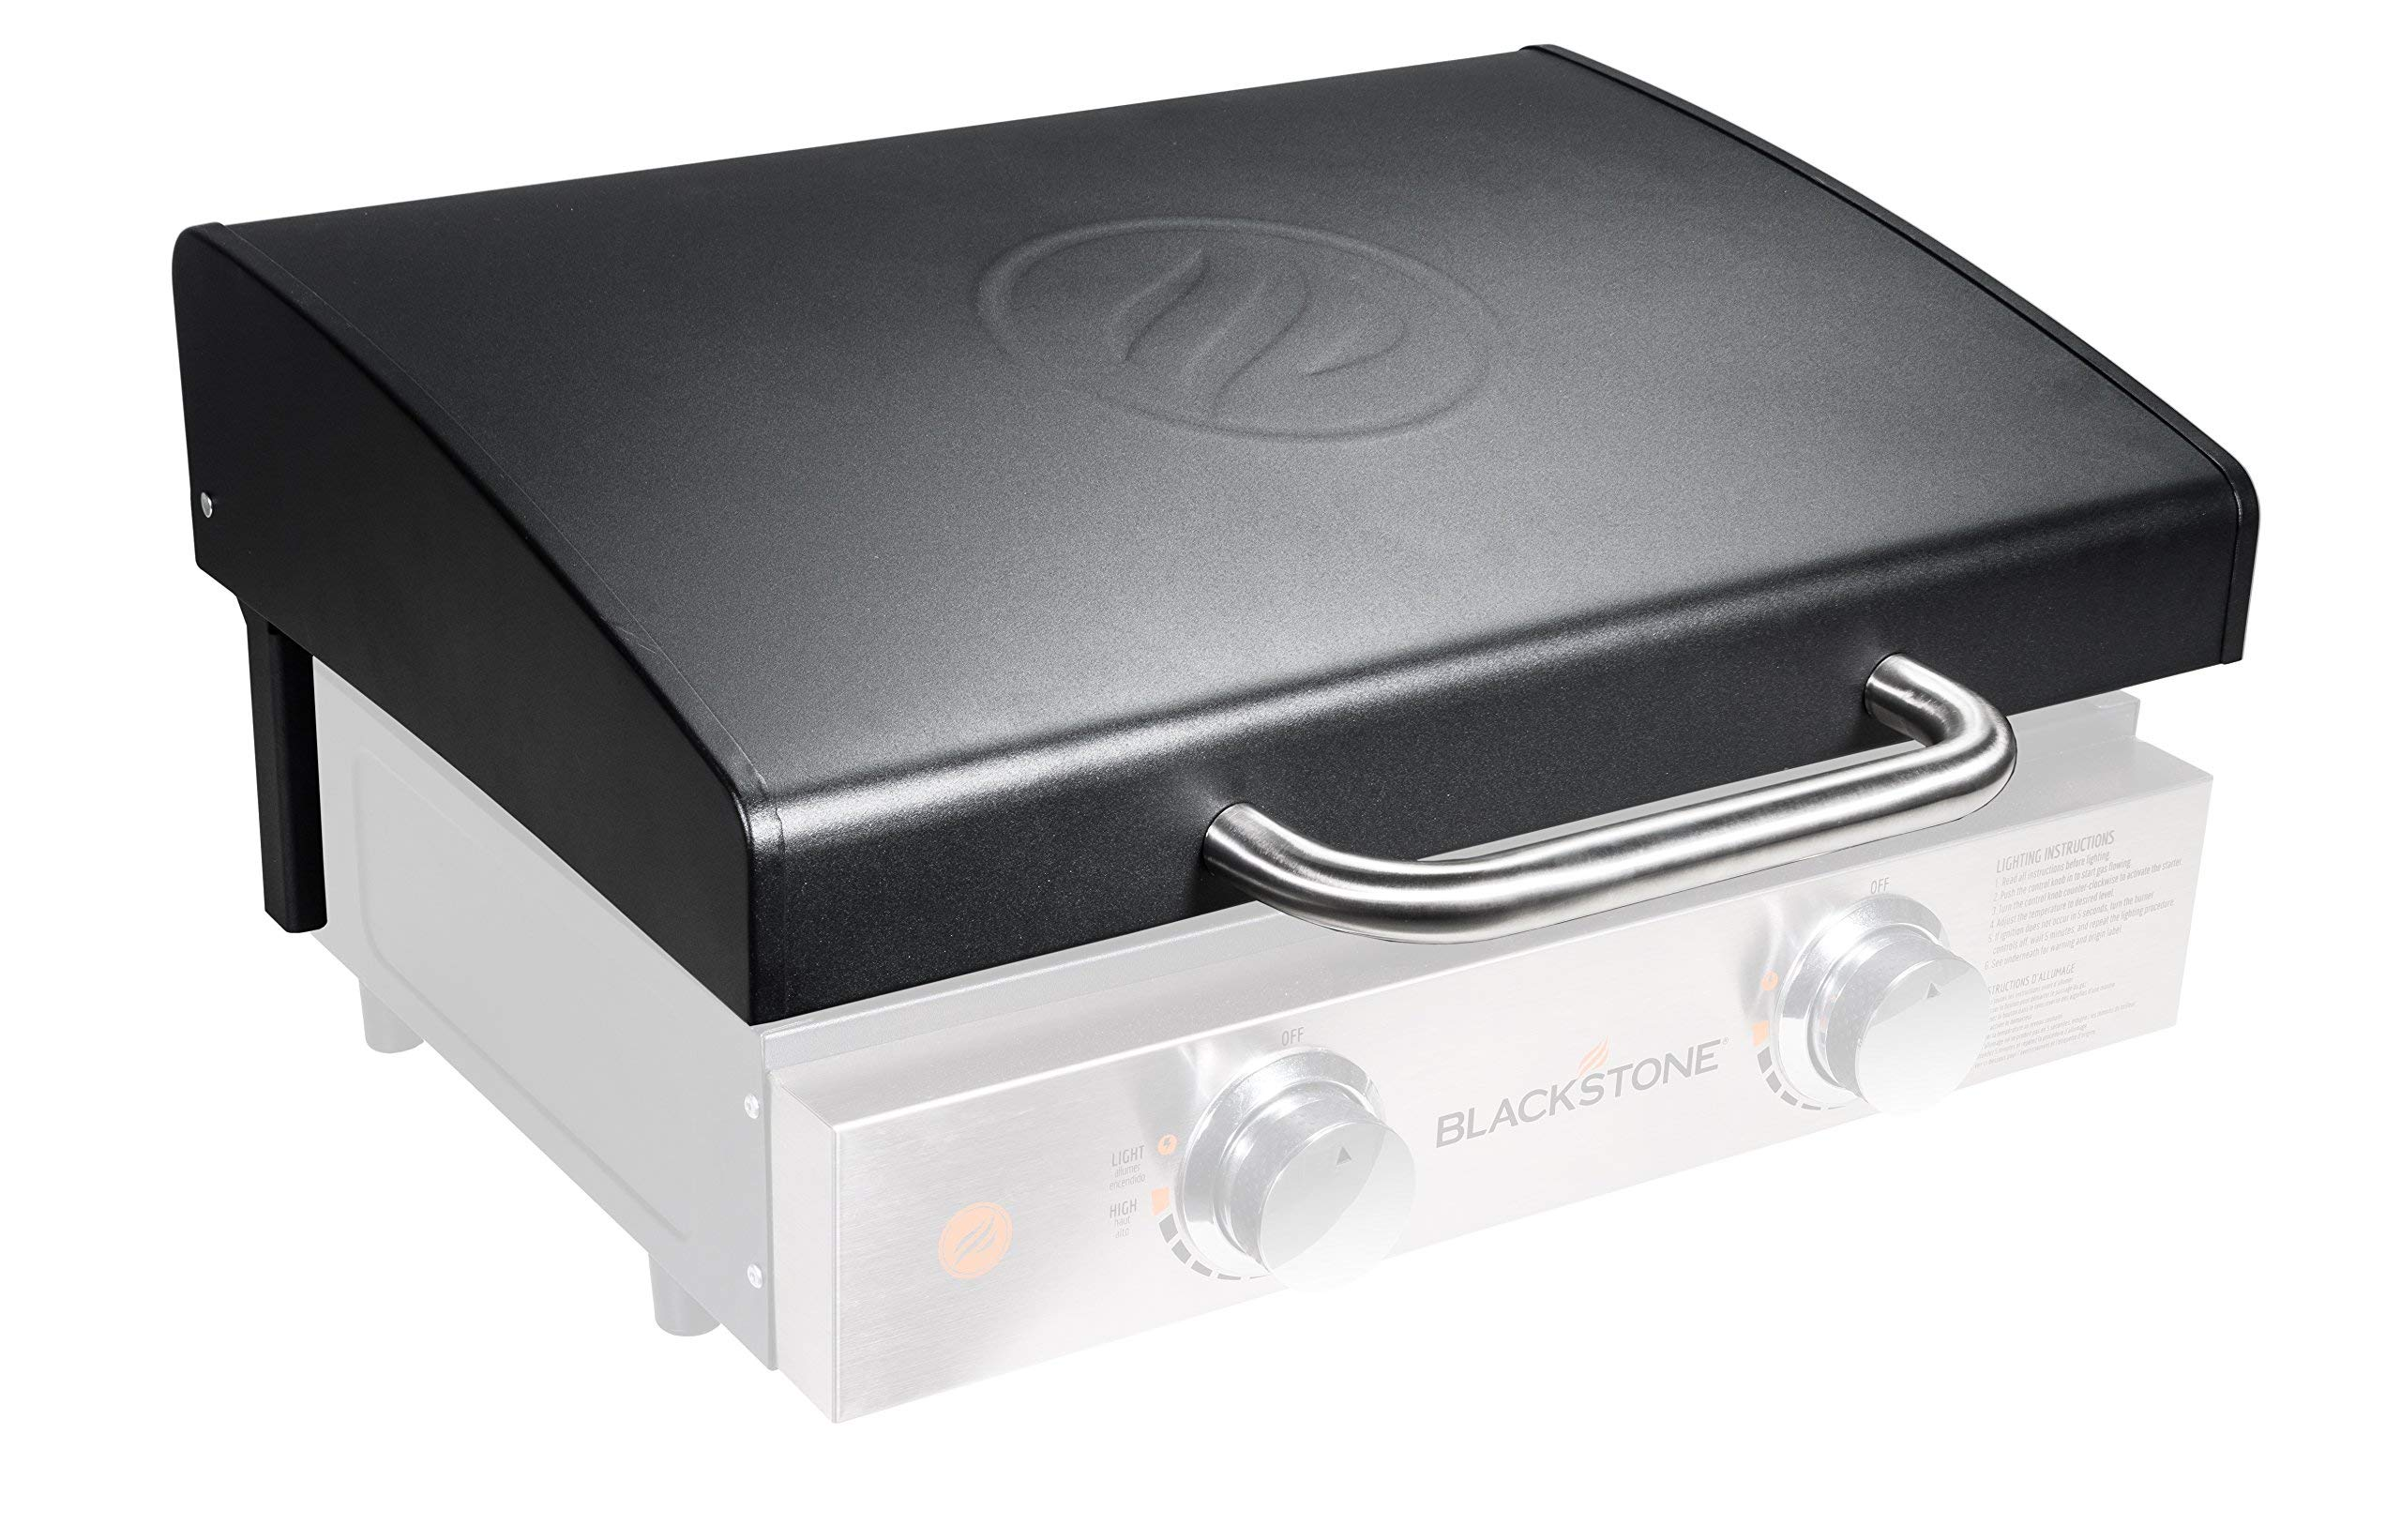 Blackstone 5011 Signature Accessories-22 Griddle Hood, Black (Renewed)